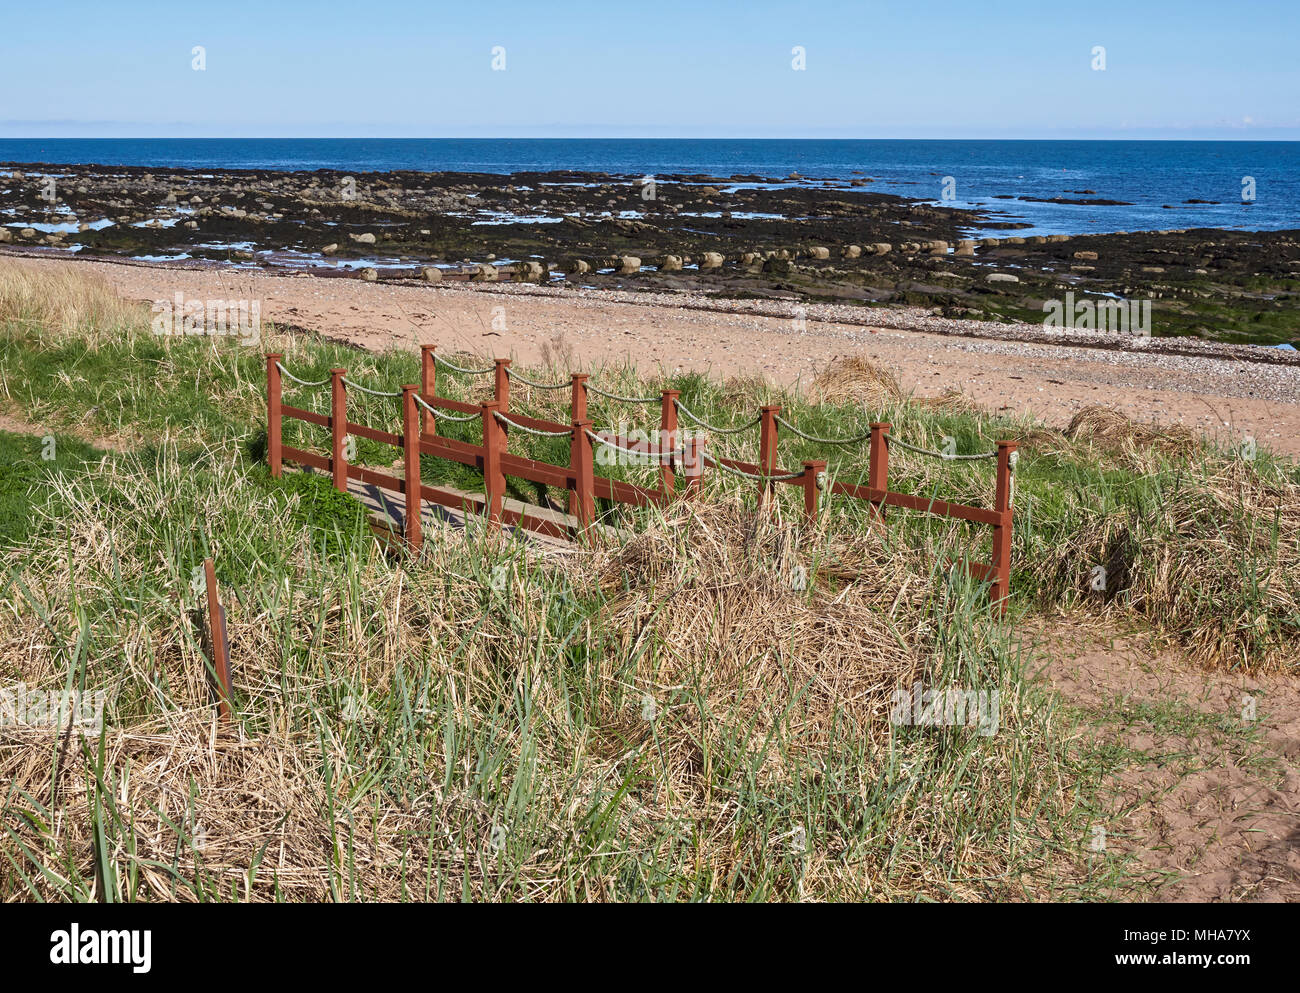 A small Wooden Bridge on the North East Scotland Coastal Path midway between Arbroath and East Haven. Angus, Scotland. Stock Photo